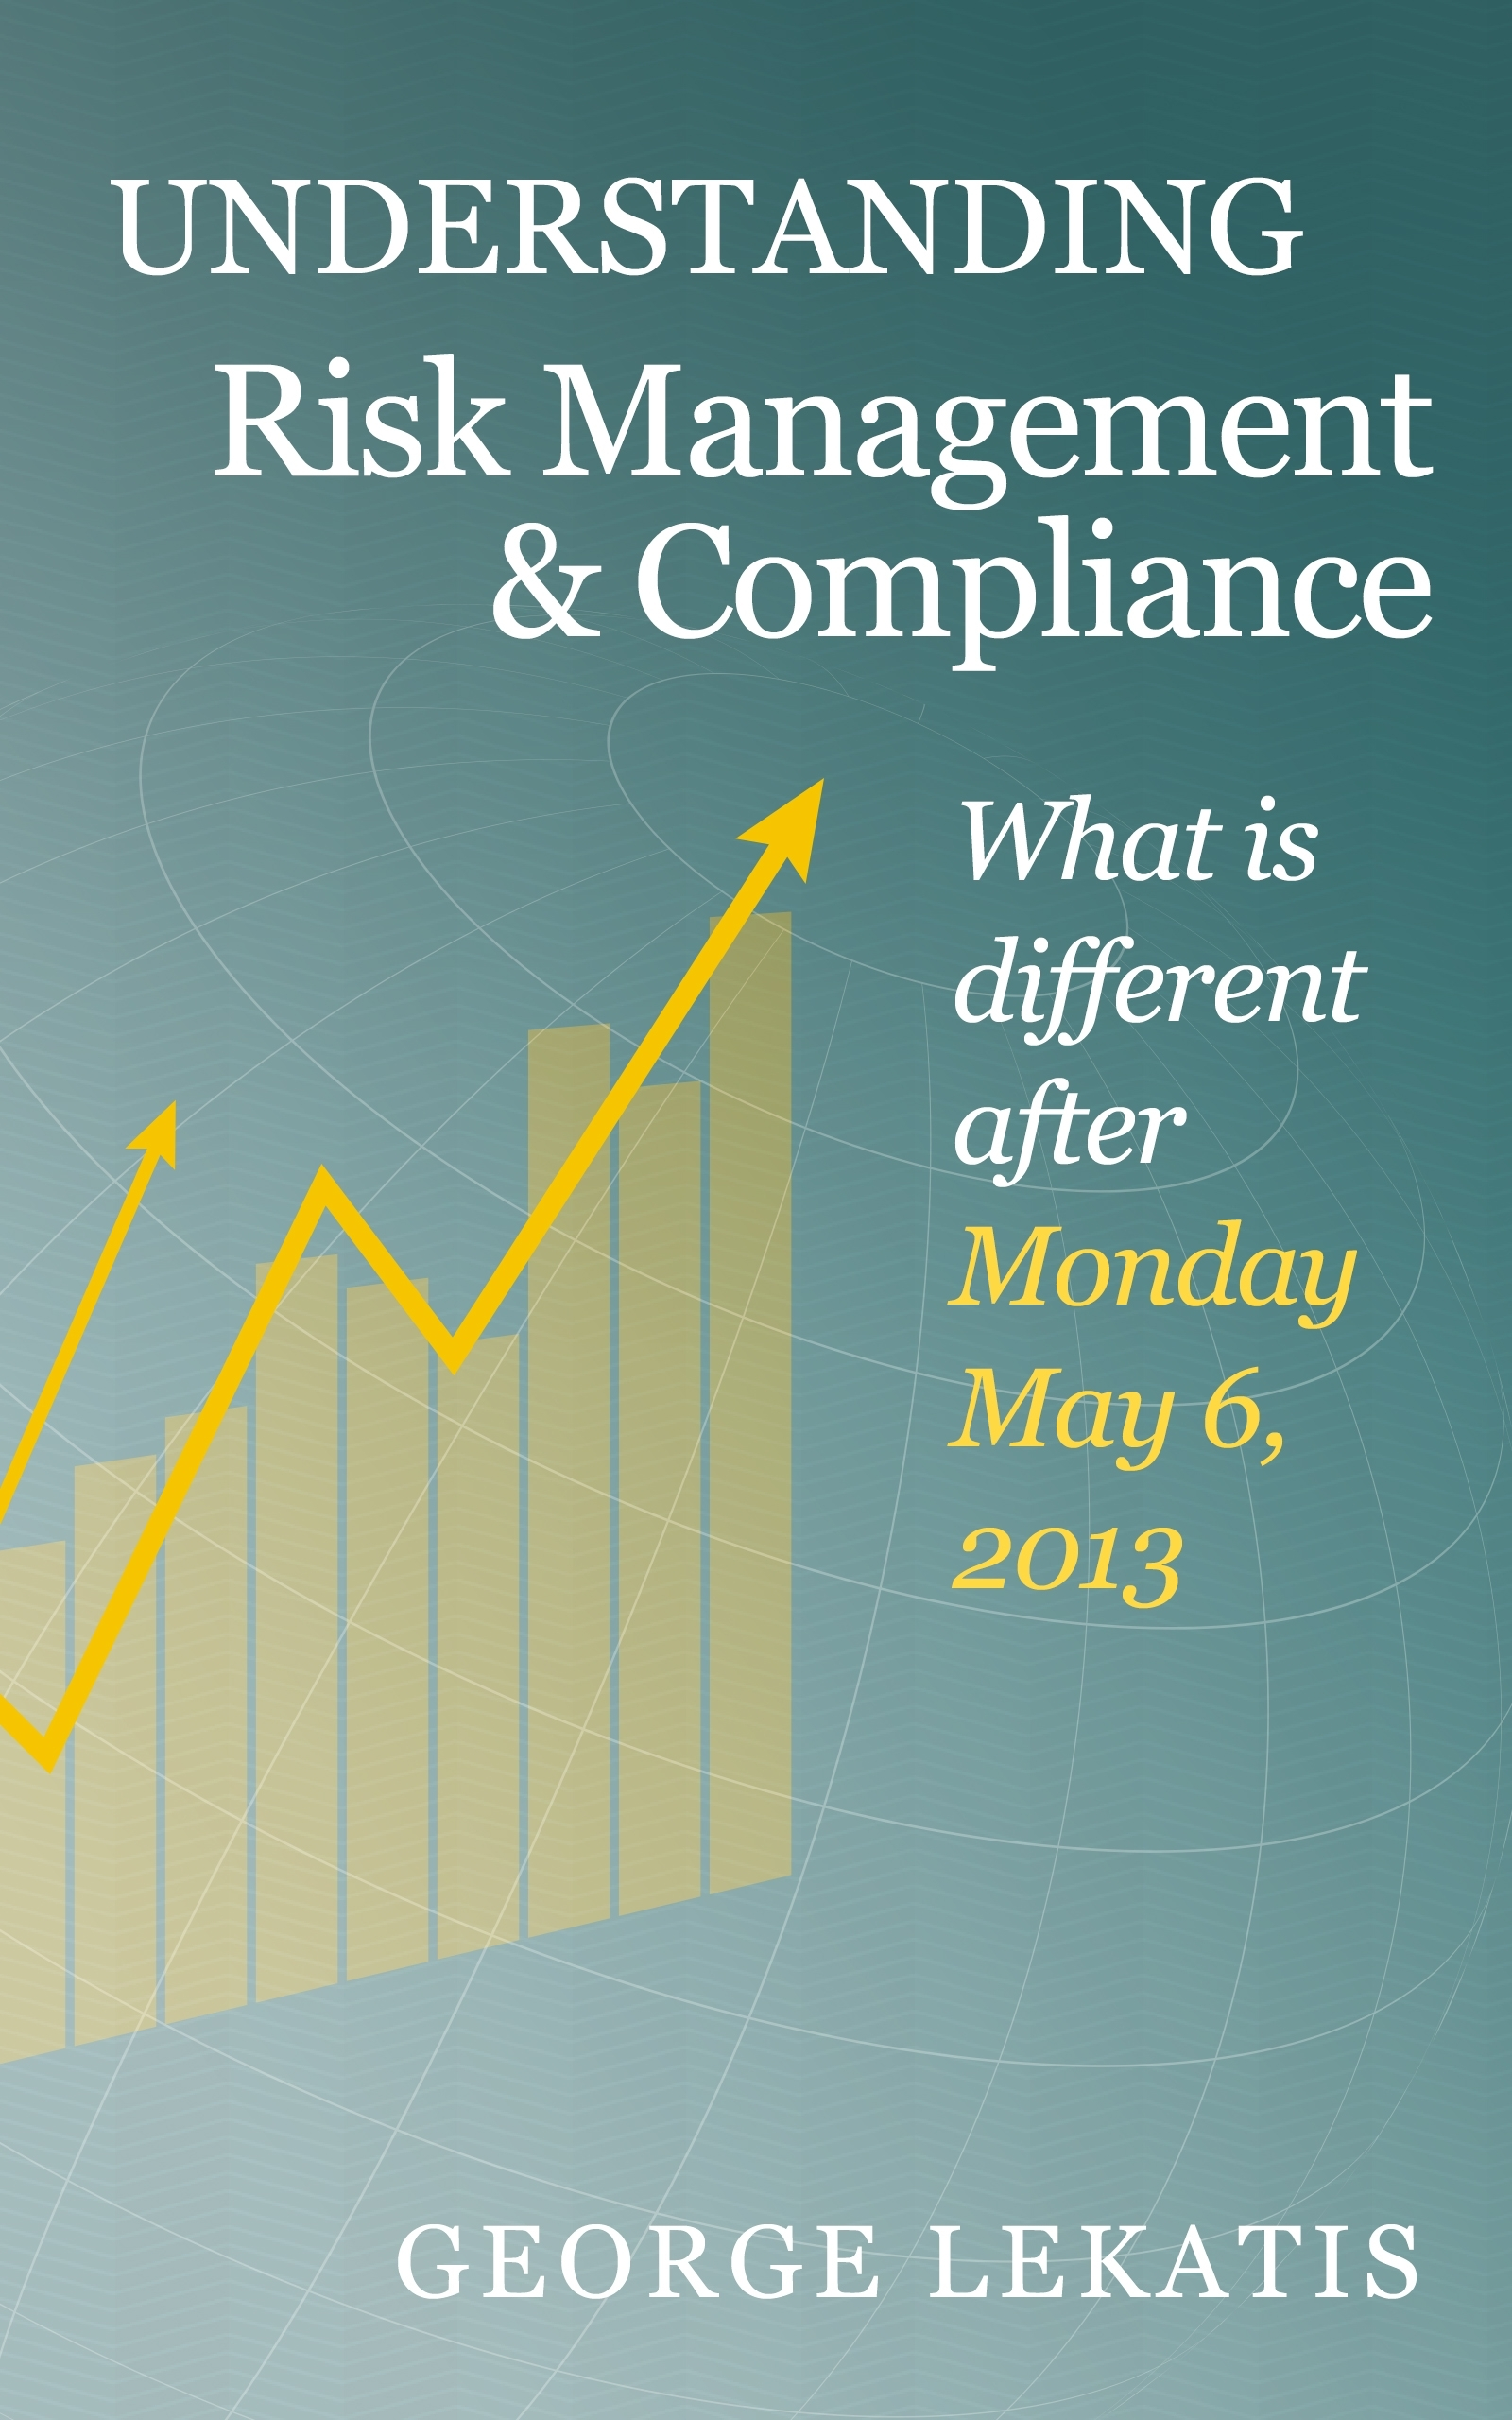 Understanding Risk Management and Compliance, What is different after Monday, May 6, 2013